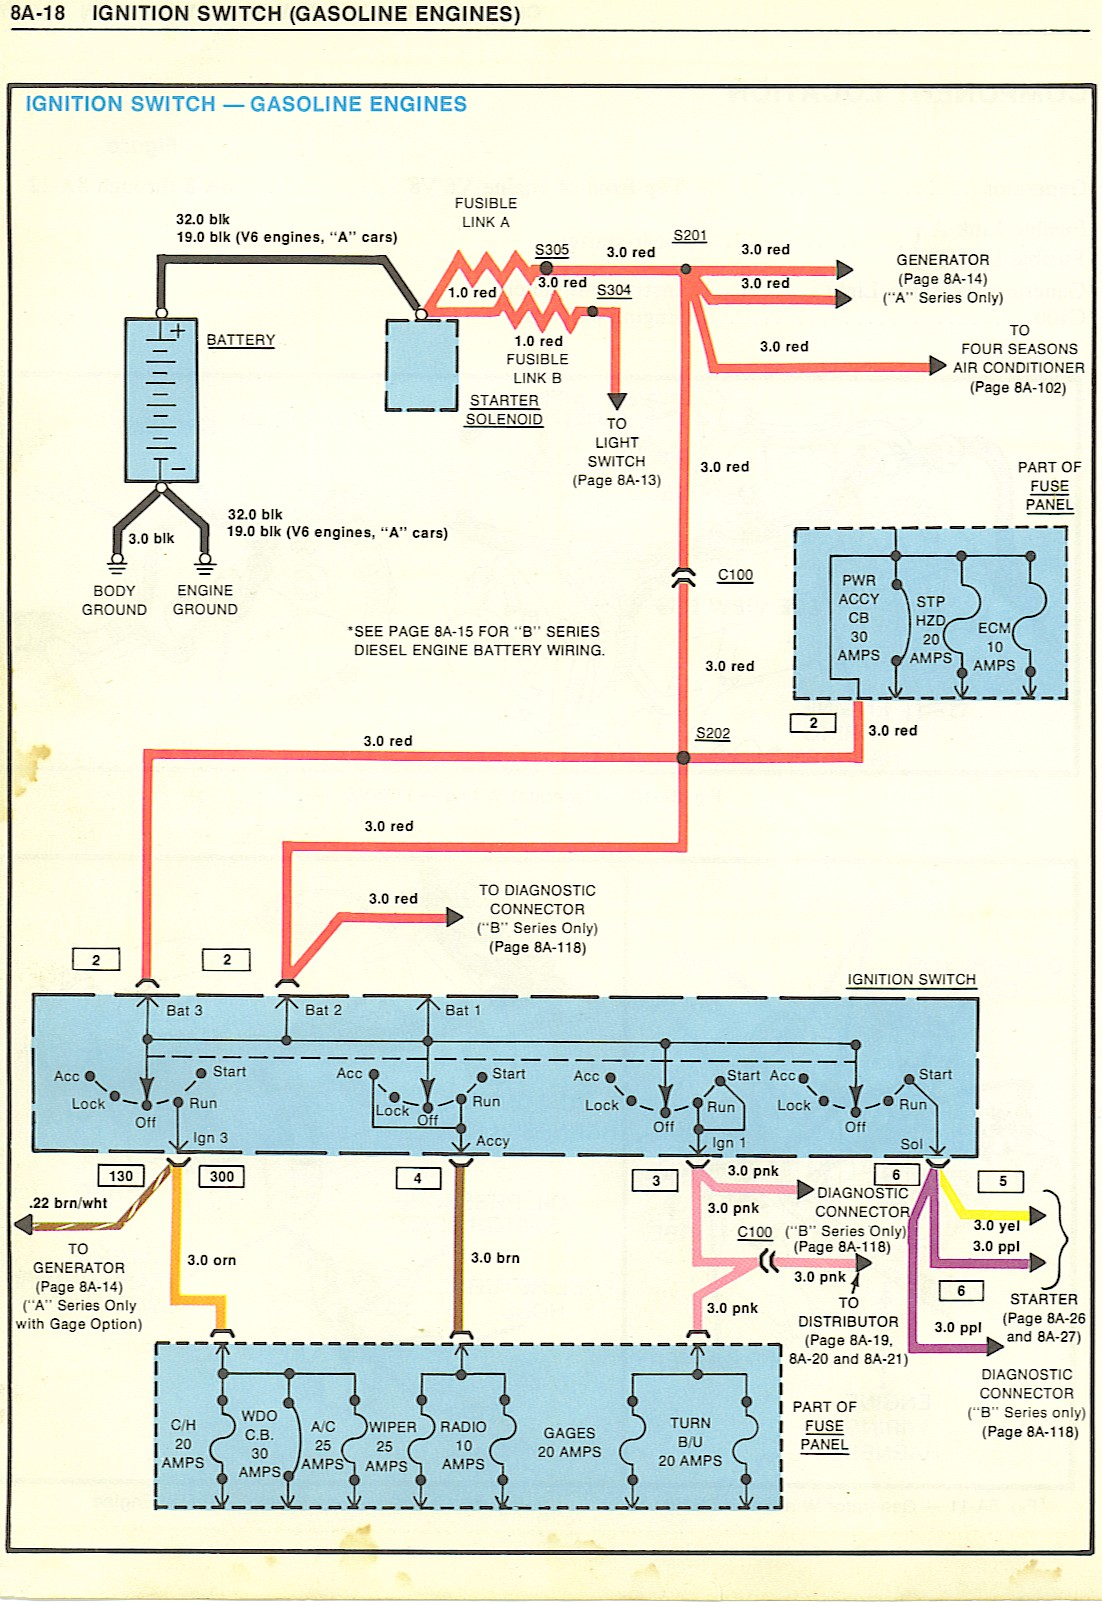 1980 Chevy Malibu Main Wiring Harness Free Download Truck Diagrams